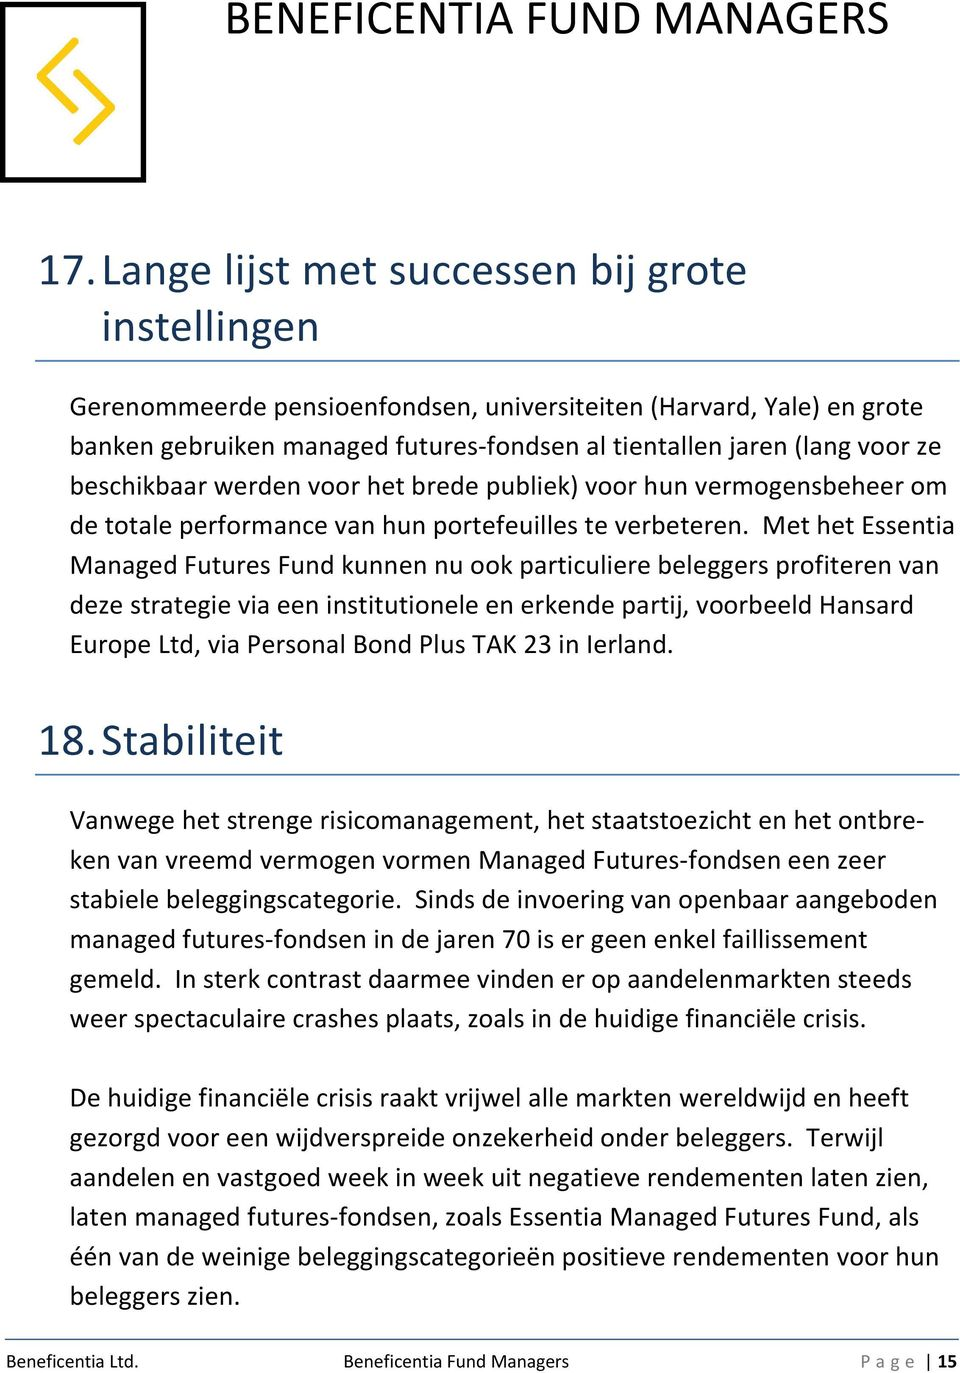 Met het Essentia Managed Futures Fund kunnen nu ook particuliere beleggers profiteren van deze strategie via een institutionele en erkende partij, voorbeeld Hansard Europe Ltd, via Personal Bond Plus